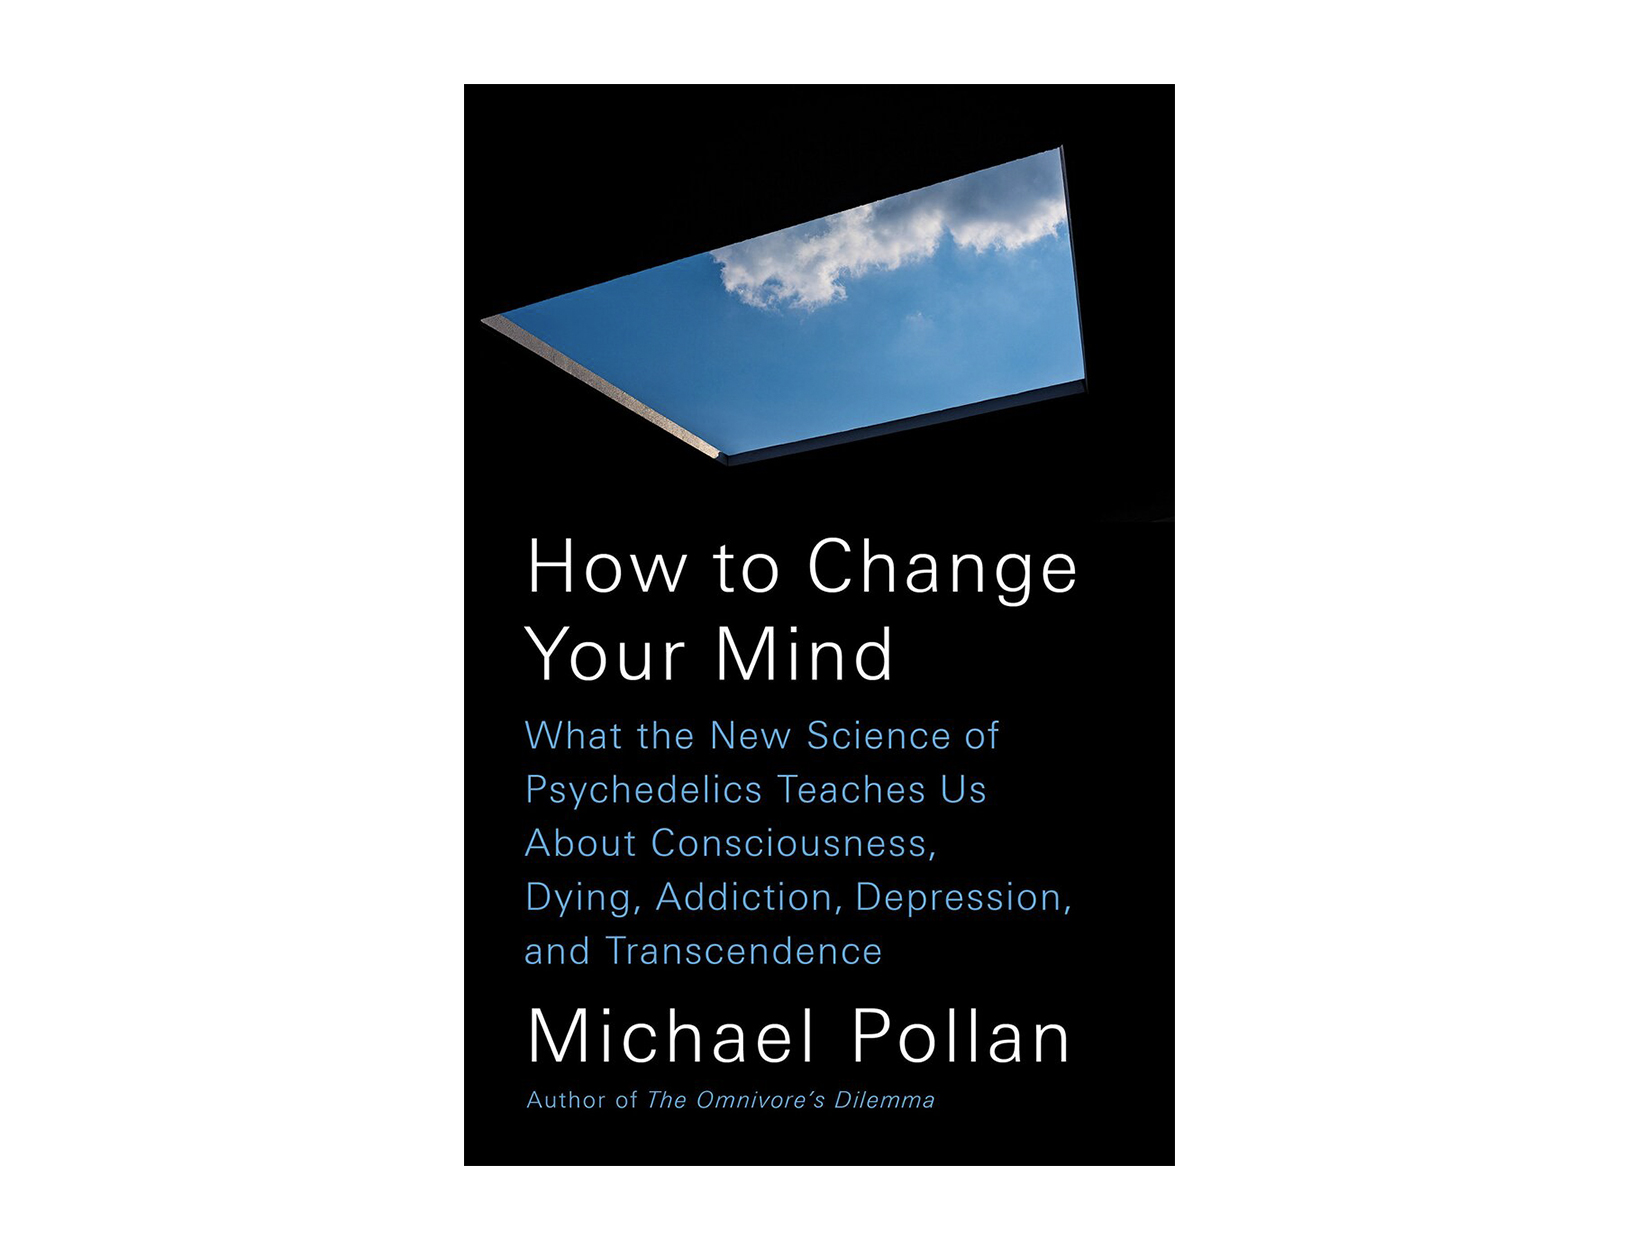 <em>How to Change Your Mind</em> by Michael Pollan